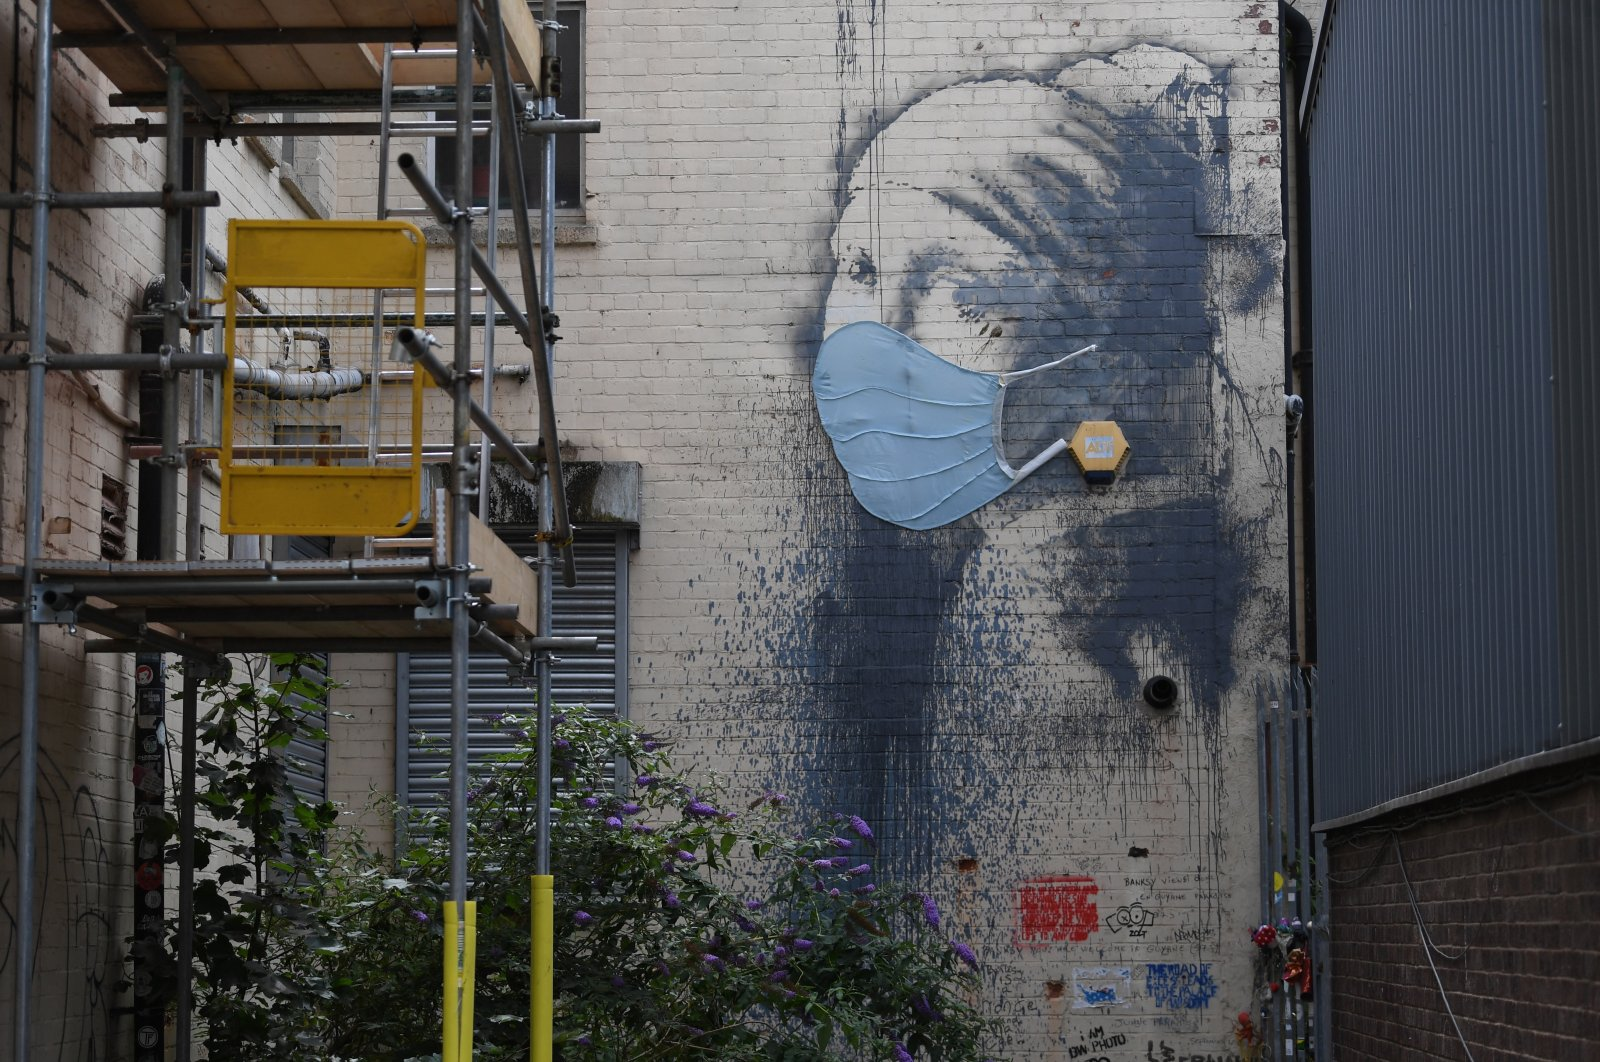 British artist Banksy's work 'Girl with a Pierced Eardrum' is displayed wearing a face covering in Bristol, UK, July 15, 2020. (EPA Photo)